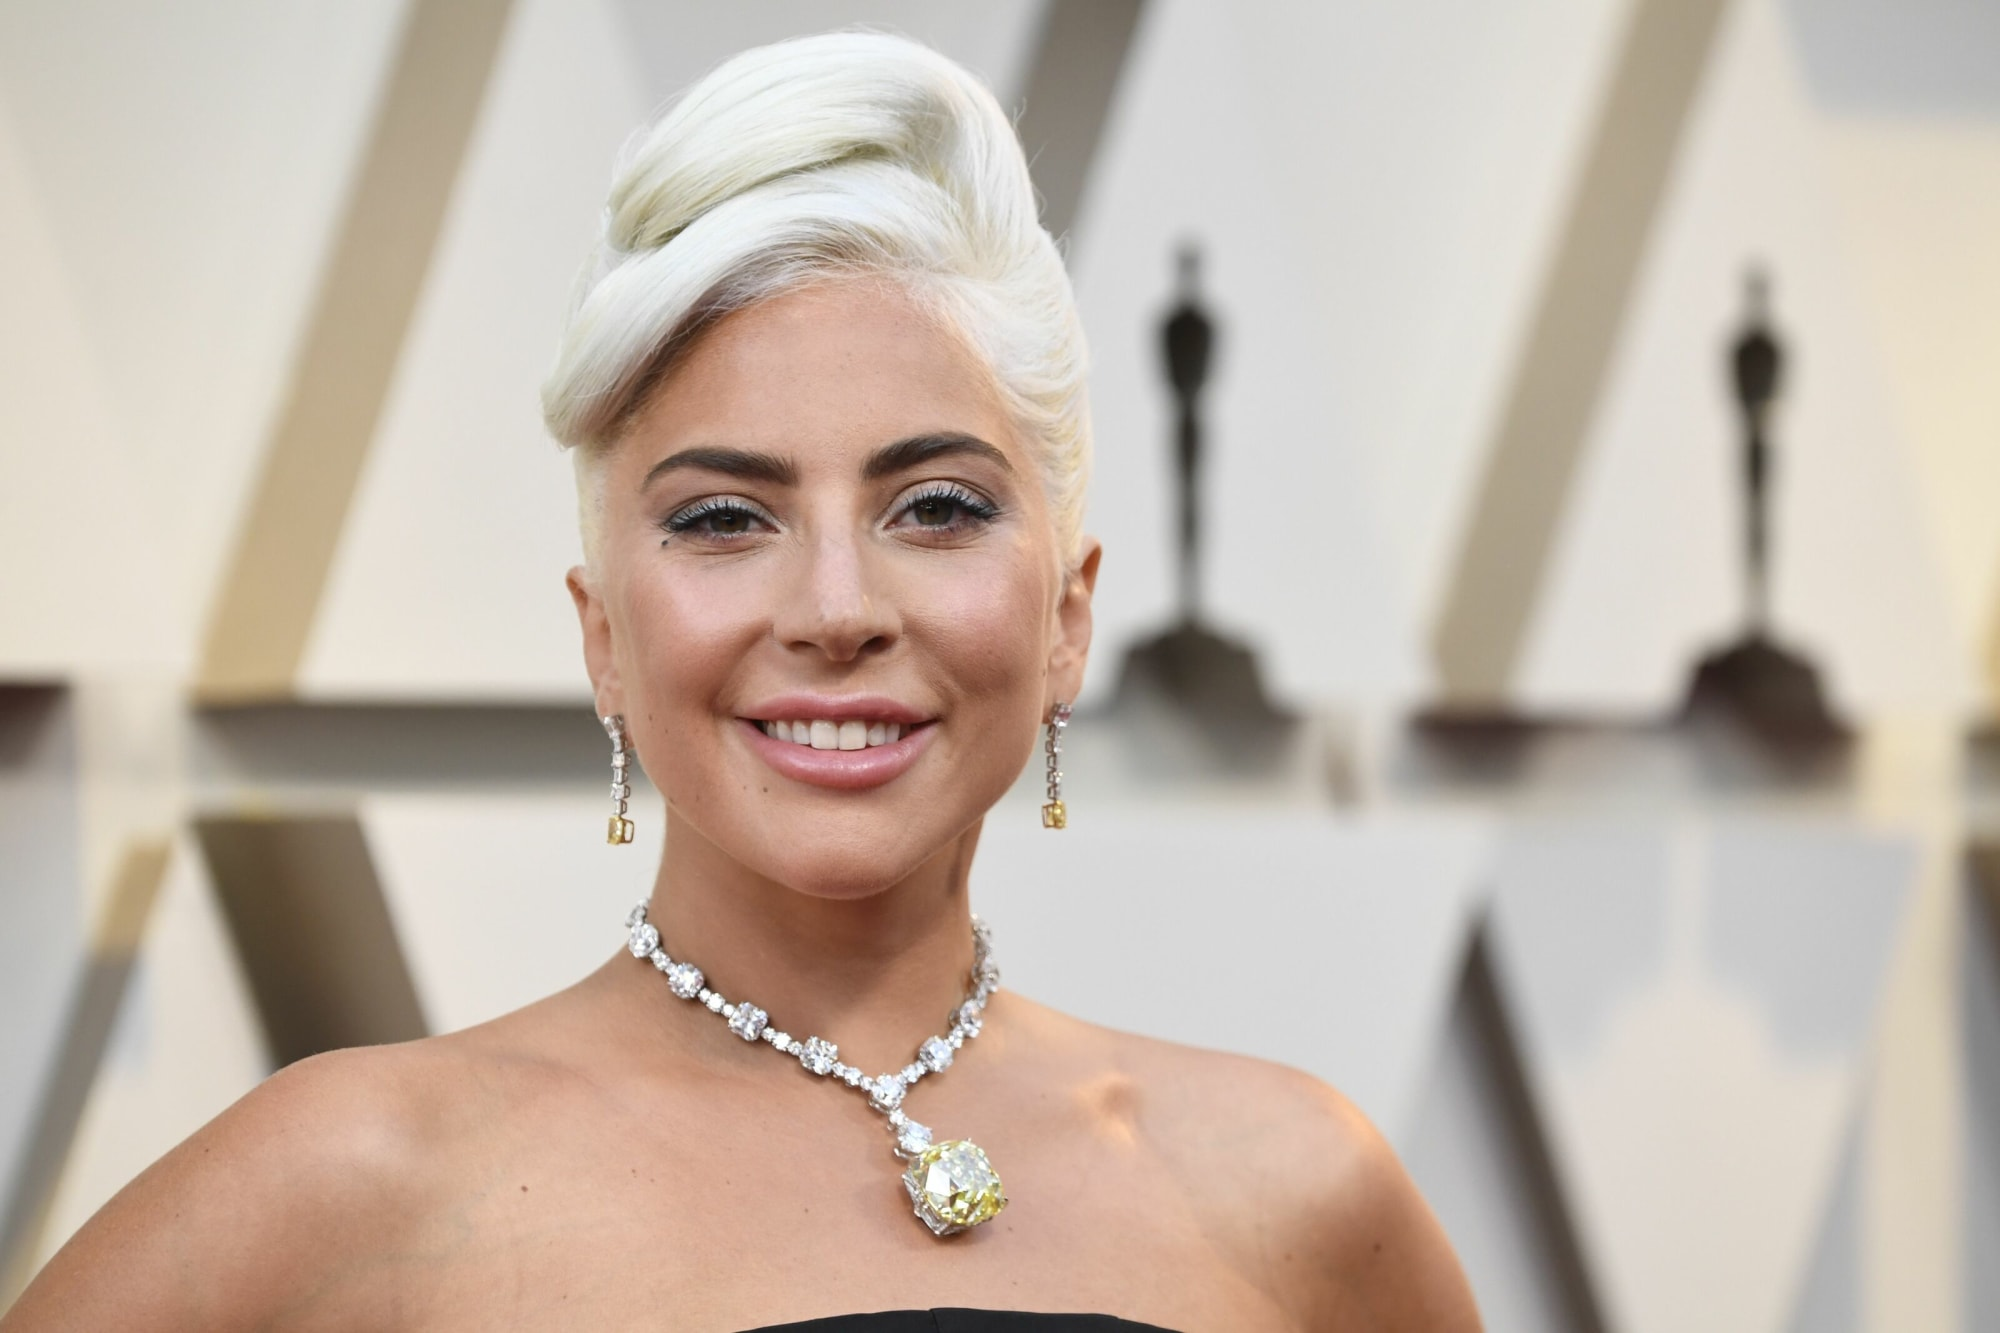 Lady Gaga impresses with cheeky pantless bend-over in high heels